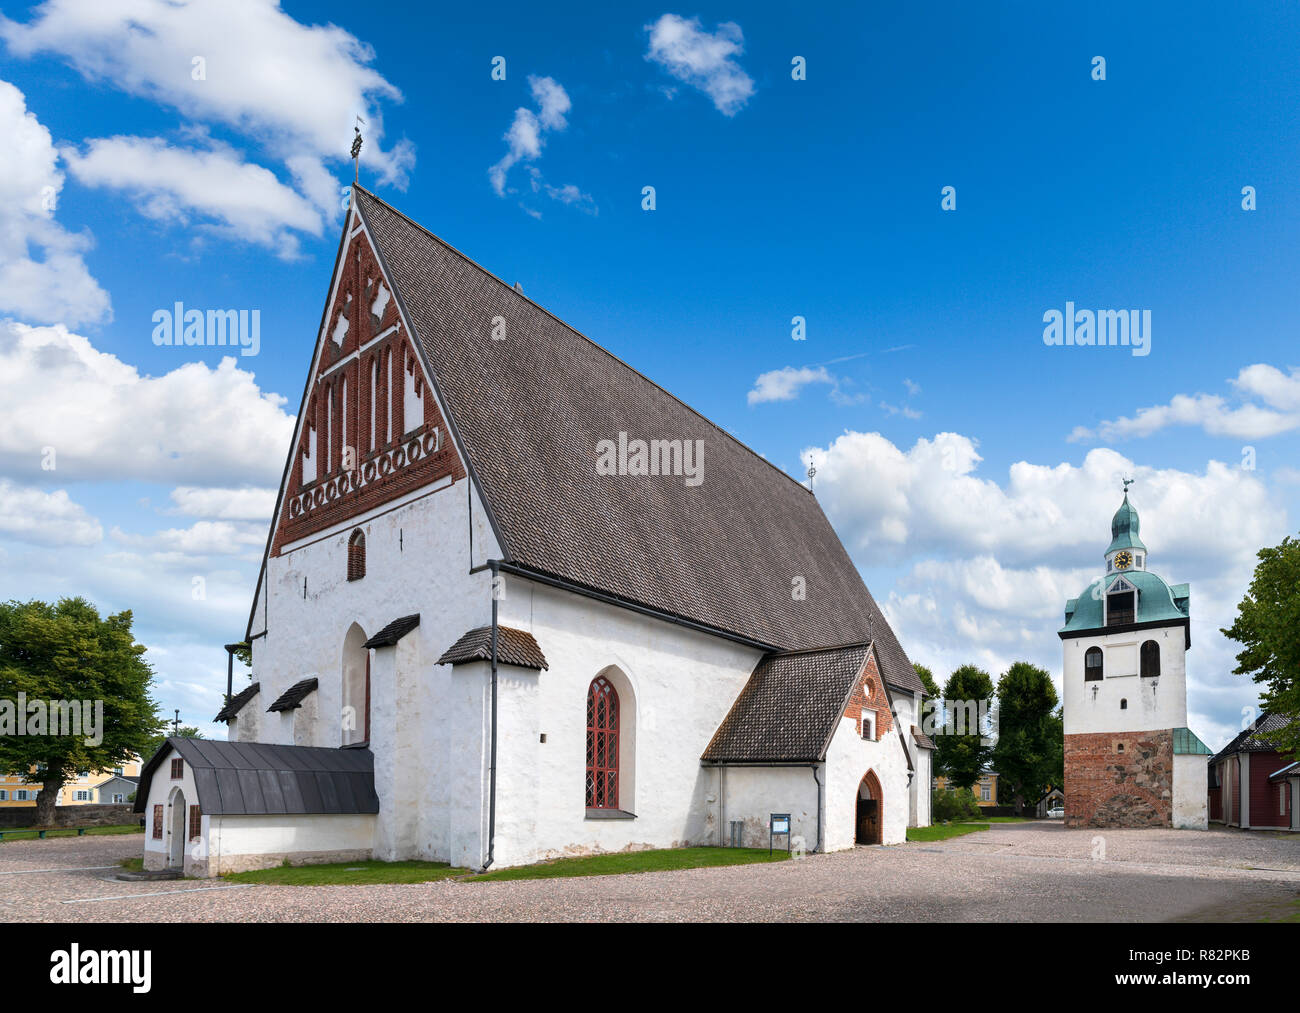 Porvoo Cathedral (Porvoon tuomiokirkko) with the separate bell tower to the right, Porvoo, Uusimaa, Finland - Stock Image